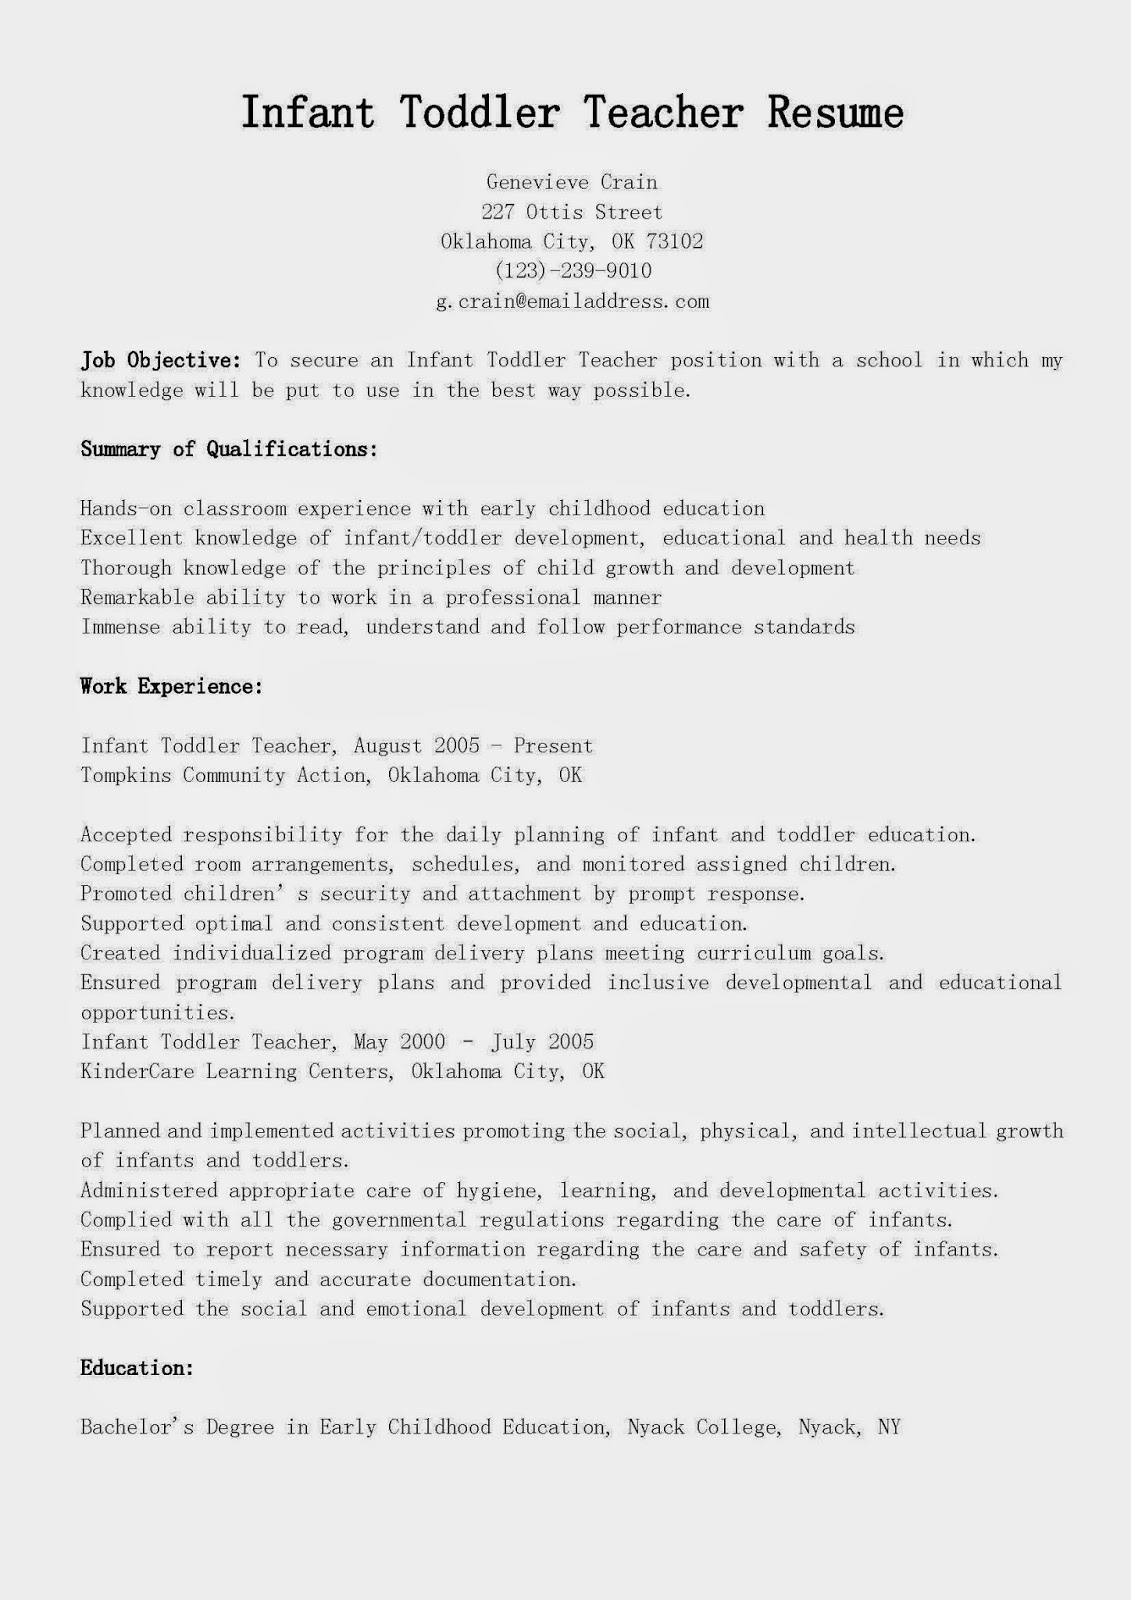 teaching assistant resume sample teaching assistant resume samples child development resume template child development resume - Sample Resume For Teaching Position